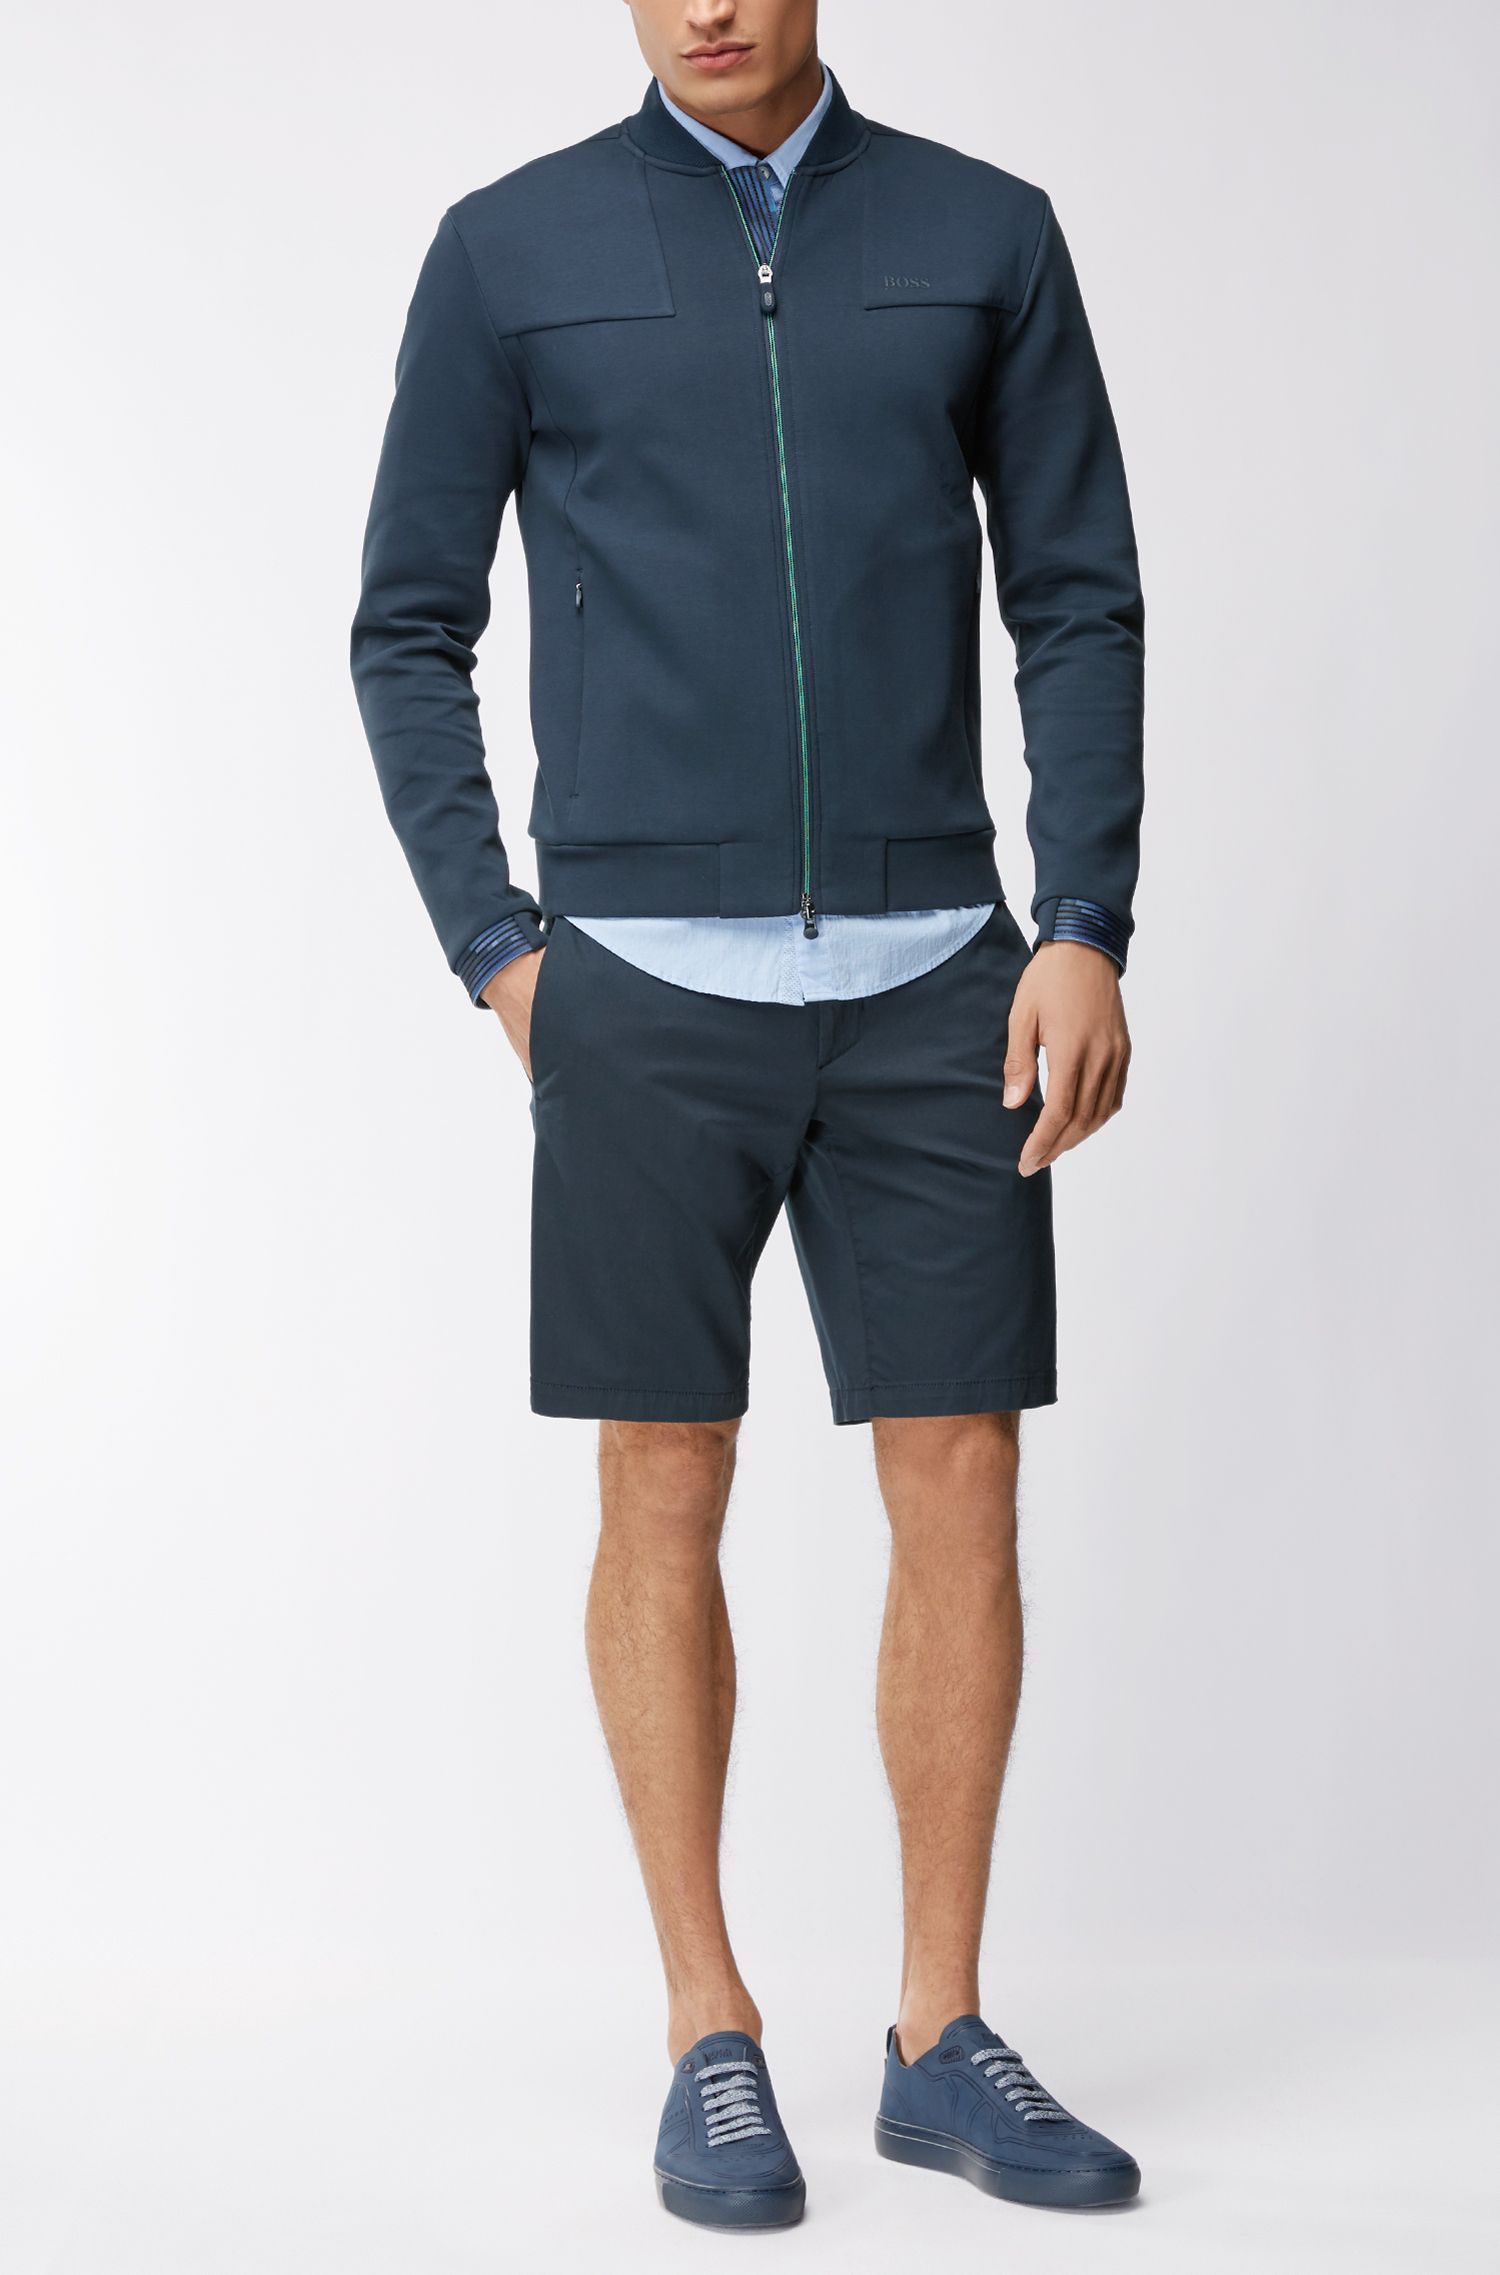 Shorts slim fit en satén elástico